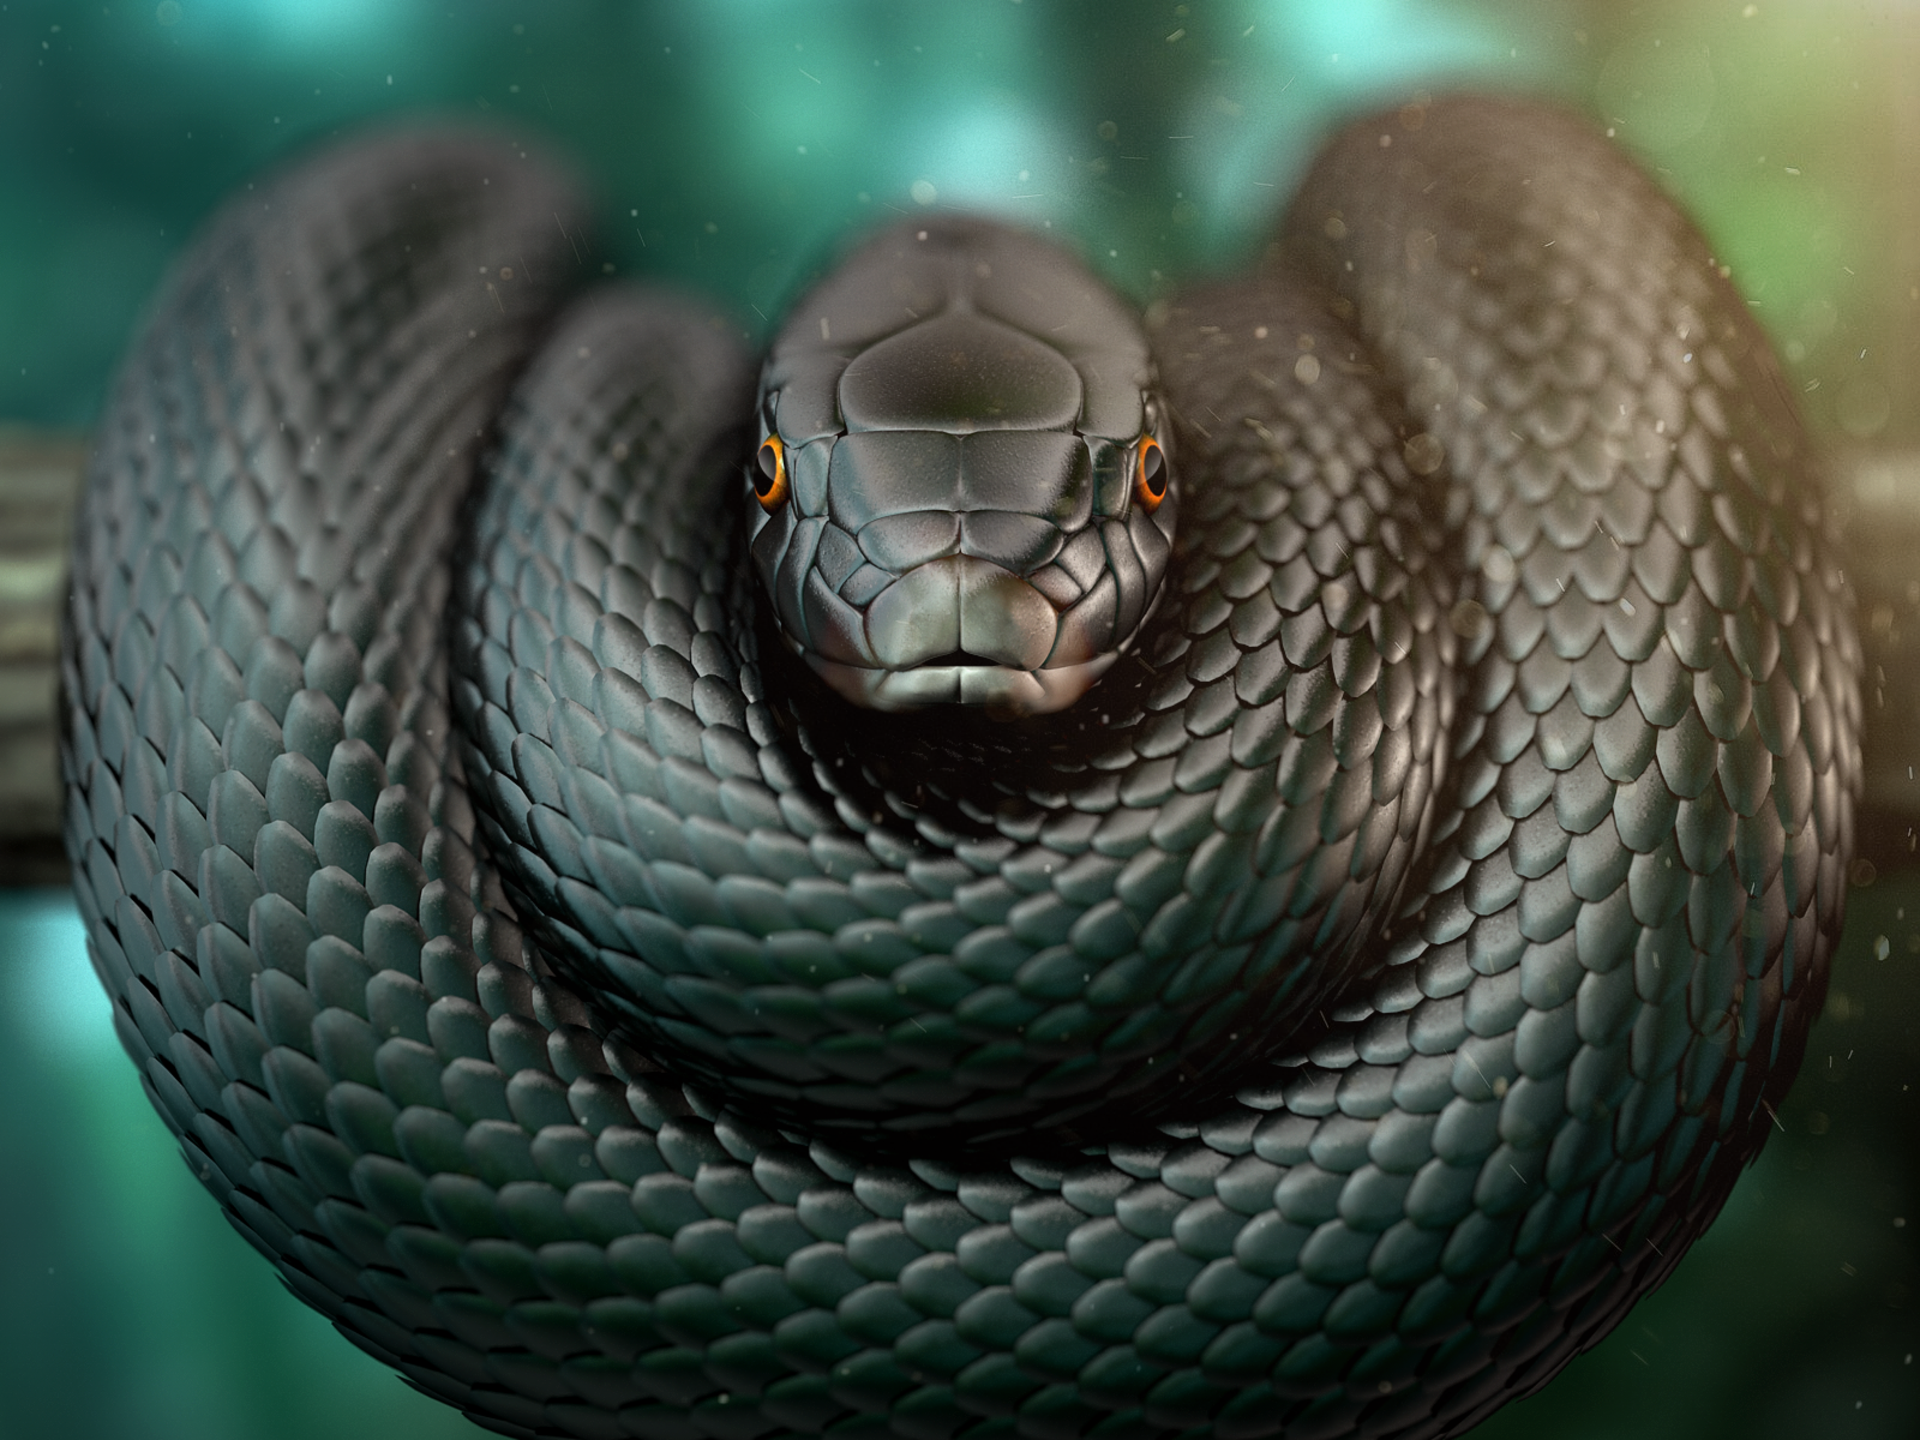 Wallpapers Black Mamba Widescreen Pictures Of Black Black Mamba Is Amazing Hd Wallpapers For Desktop Or Mobile Exp In 2020 Black Mamba Snake Mamba Snake Black Mamba